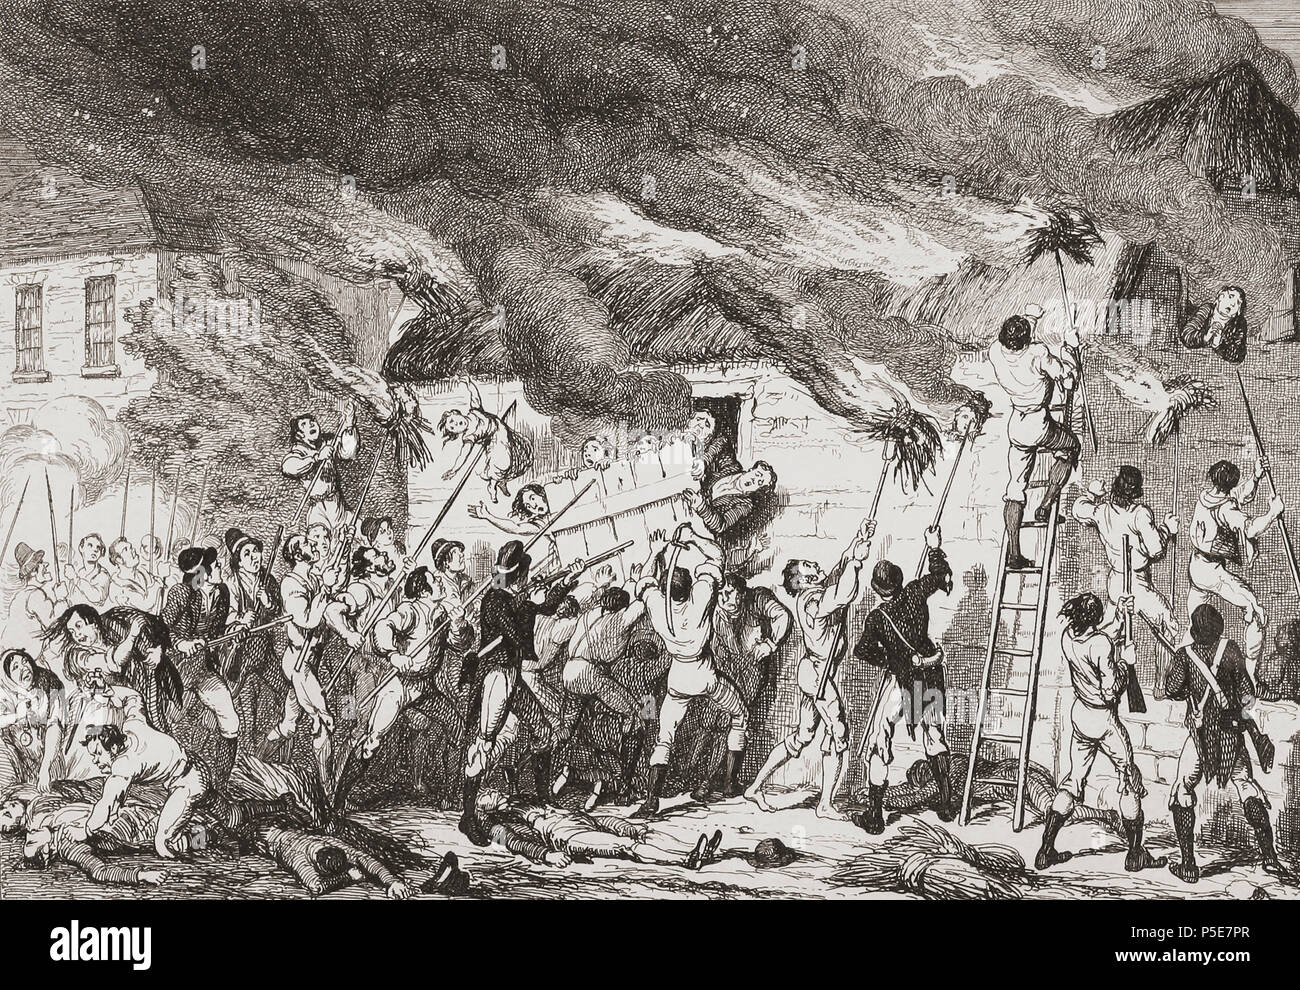 """""""Massacre at Scullabogue"""".  Illustration by George Cruikshank.  The massacre was an atrocity committed by insurgents during the 1798 Irish Rebellion which cost the lives of over 100 noncombatant men, women and children. It took place in Scullabogue, near Newbawn, County Wexford.  From History of the Irish Rebellion in 1798; with Memoirs of the Union, and Emmett's Insurrection in 1803 by W.H. Maxwell. Published in London 1854. Stock Photo"""